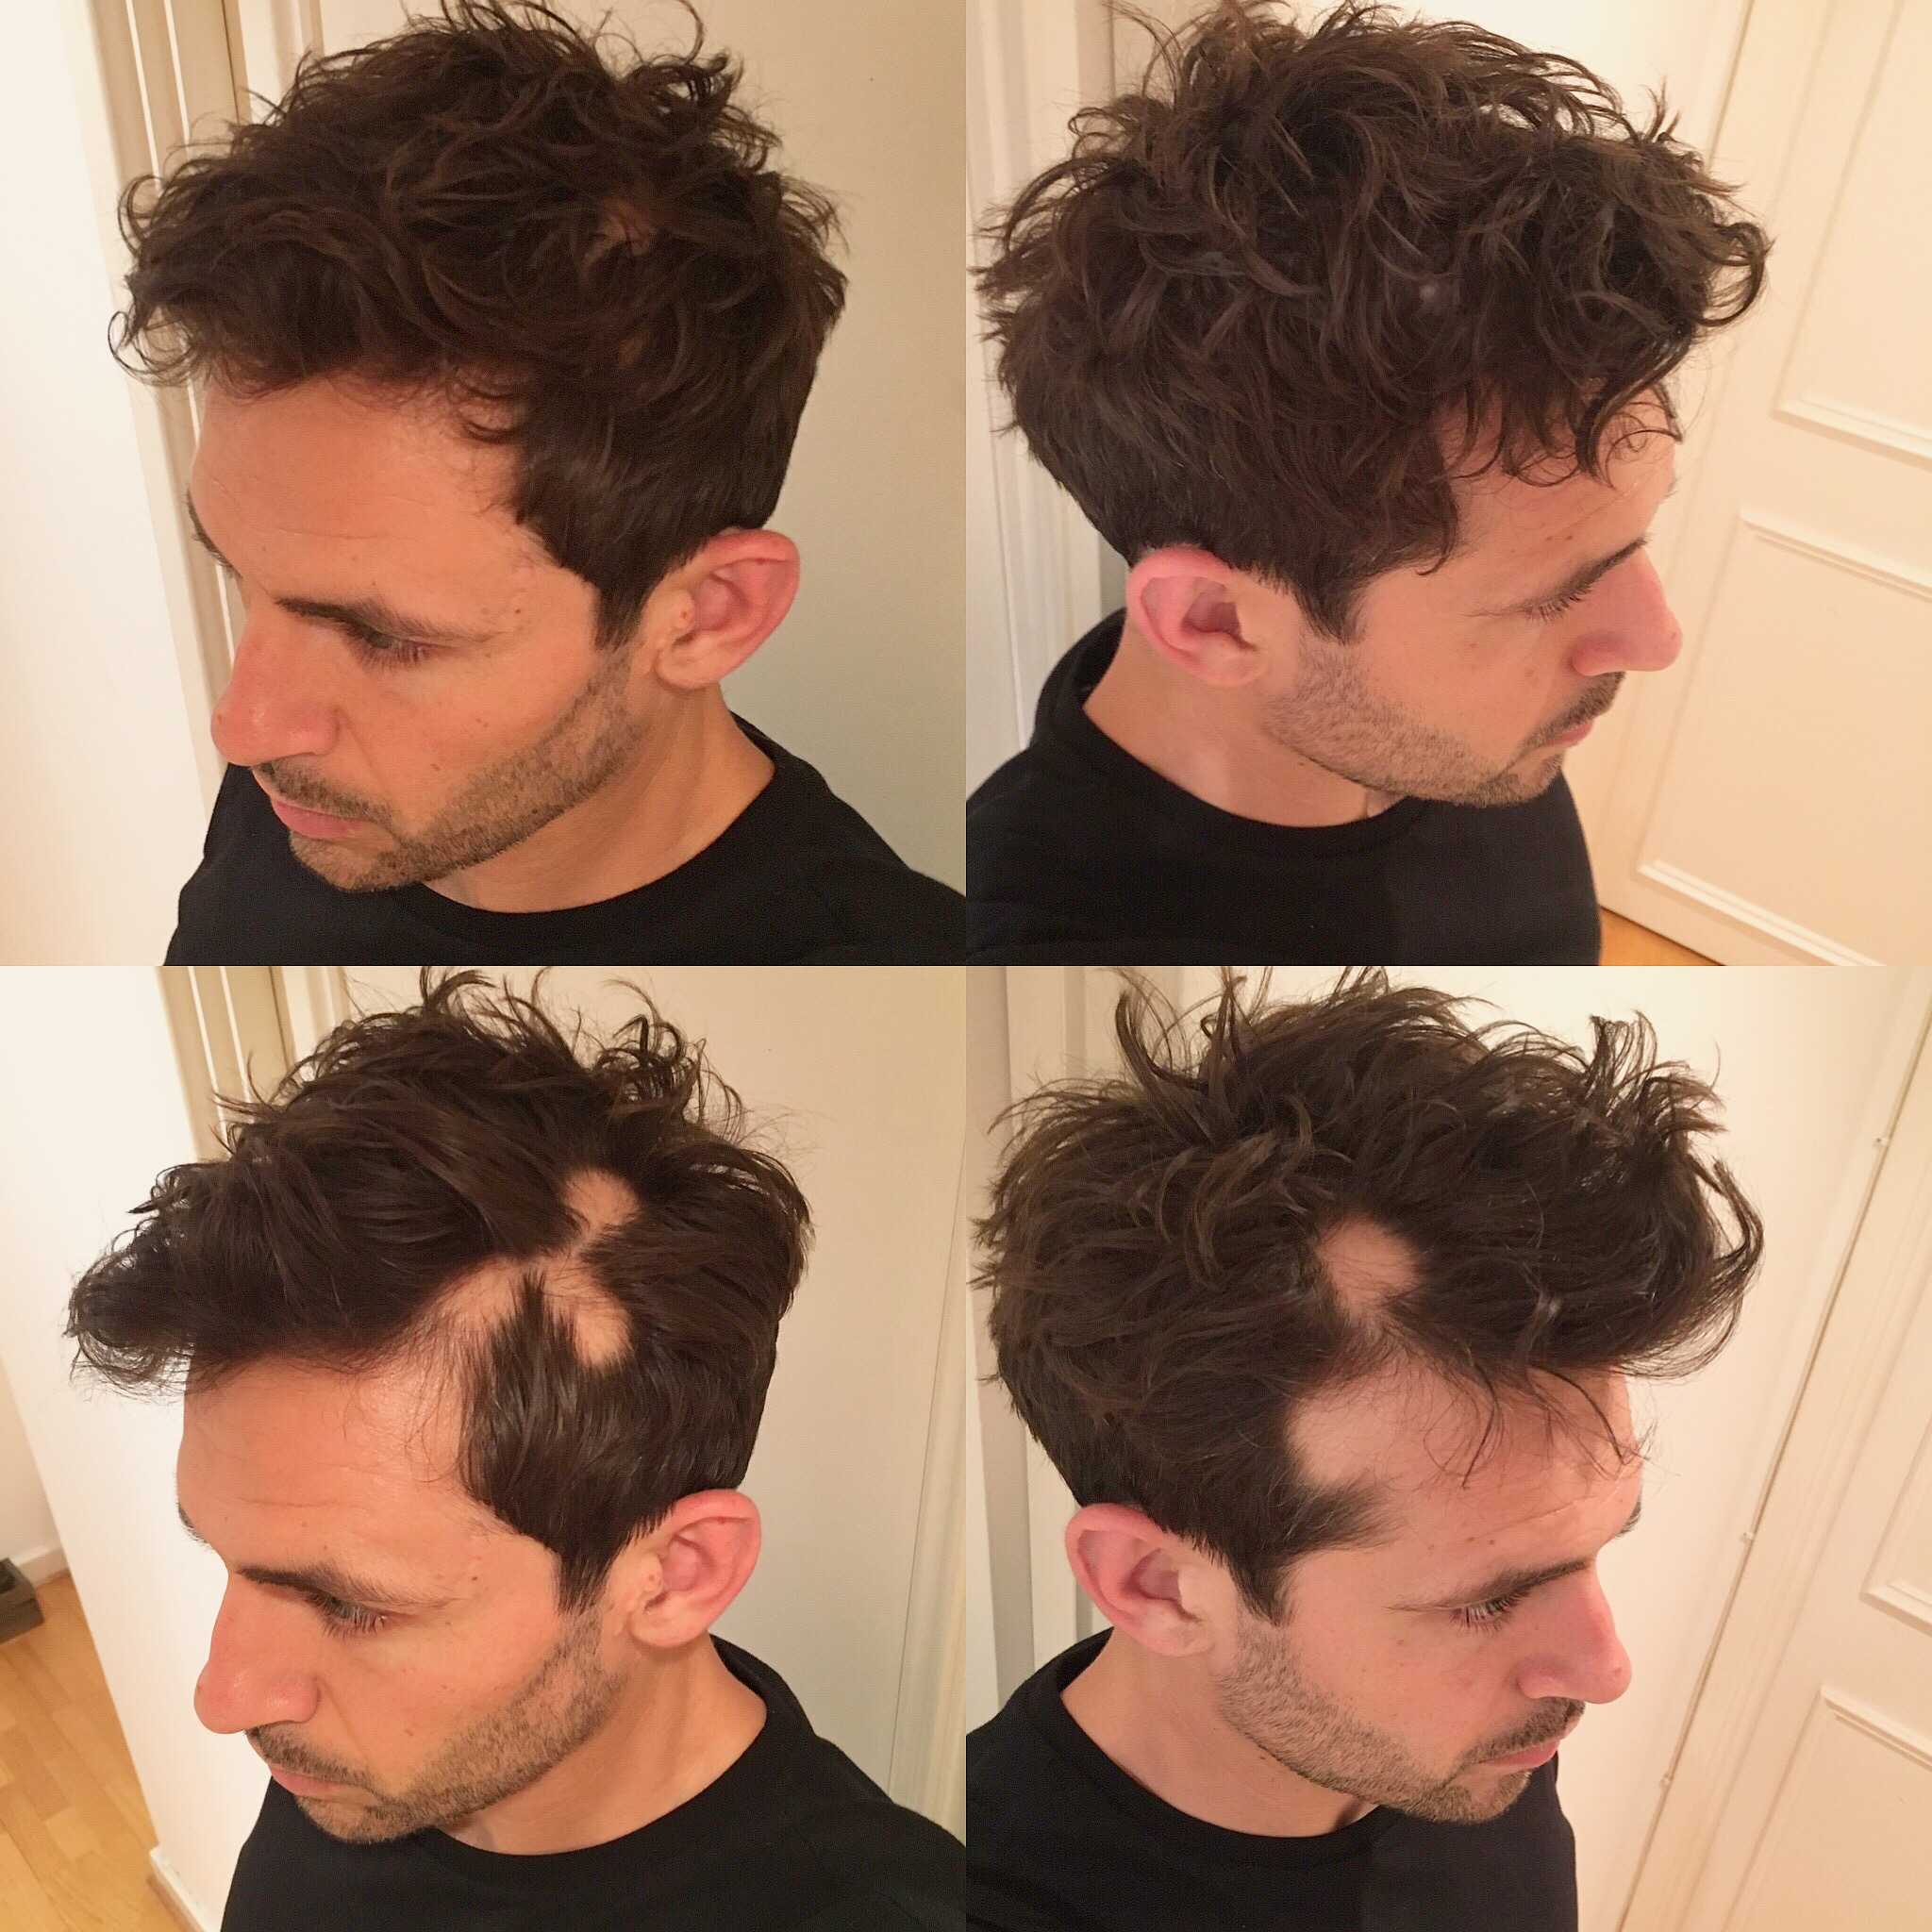 Hair patches before and after arranging hair